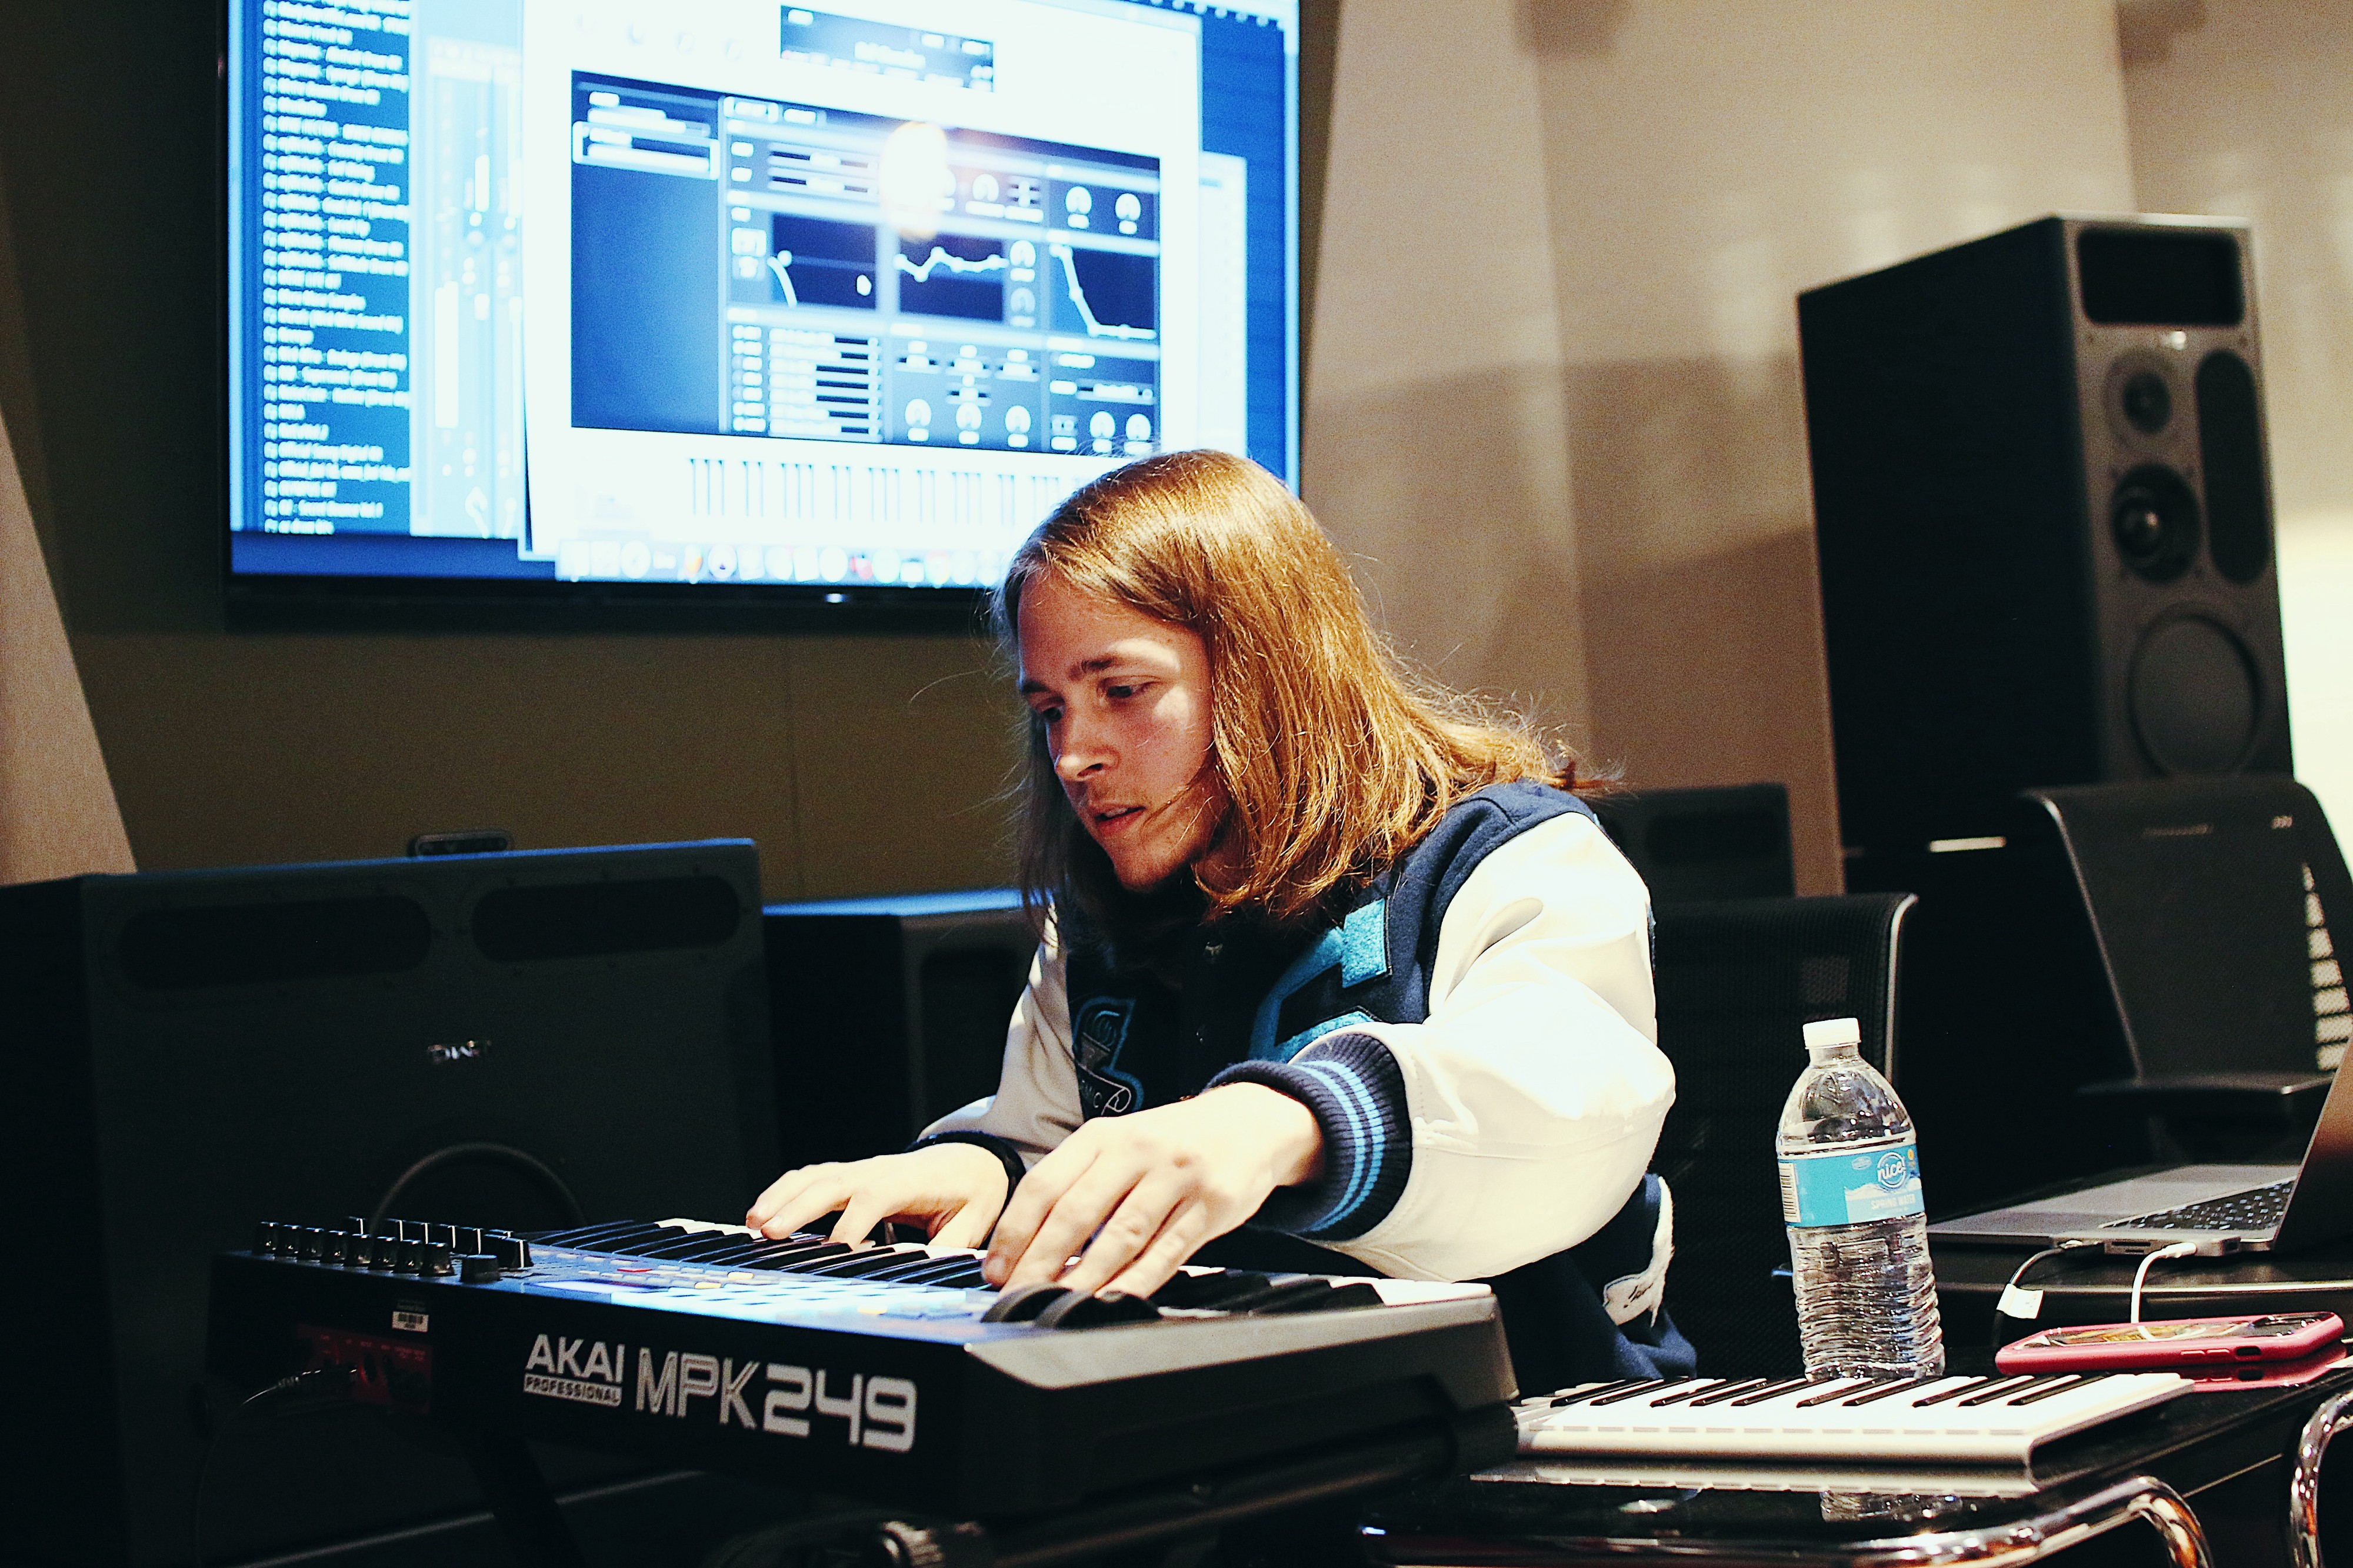 A Hip Hop Hit Maker Breaks Down His Biggest Records For Nyu Students By Chas Gilman Nyu Local